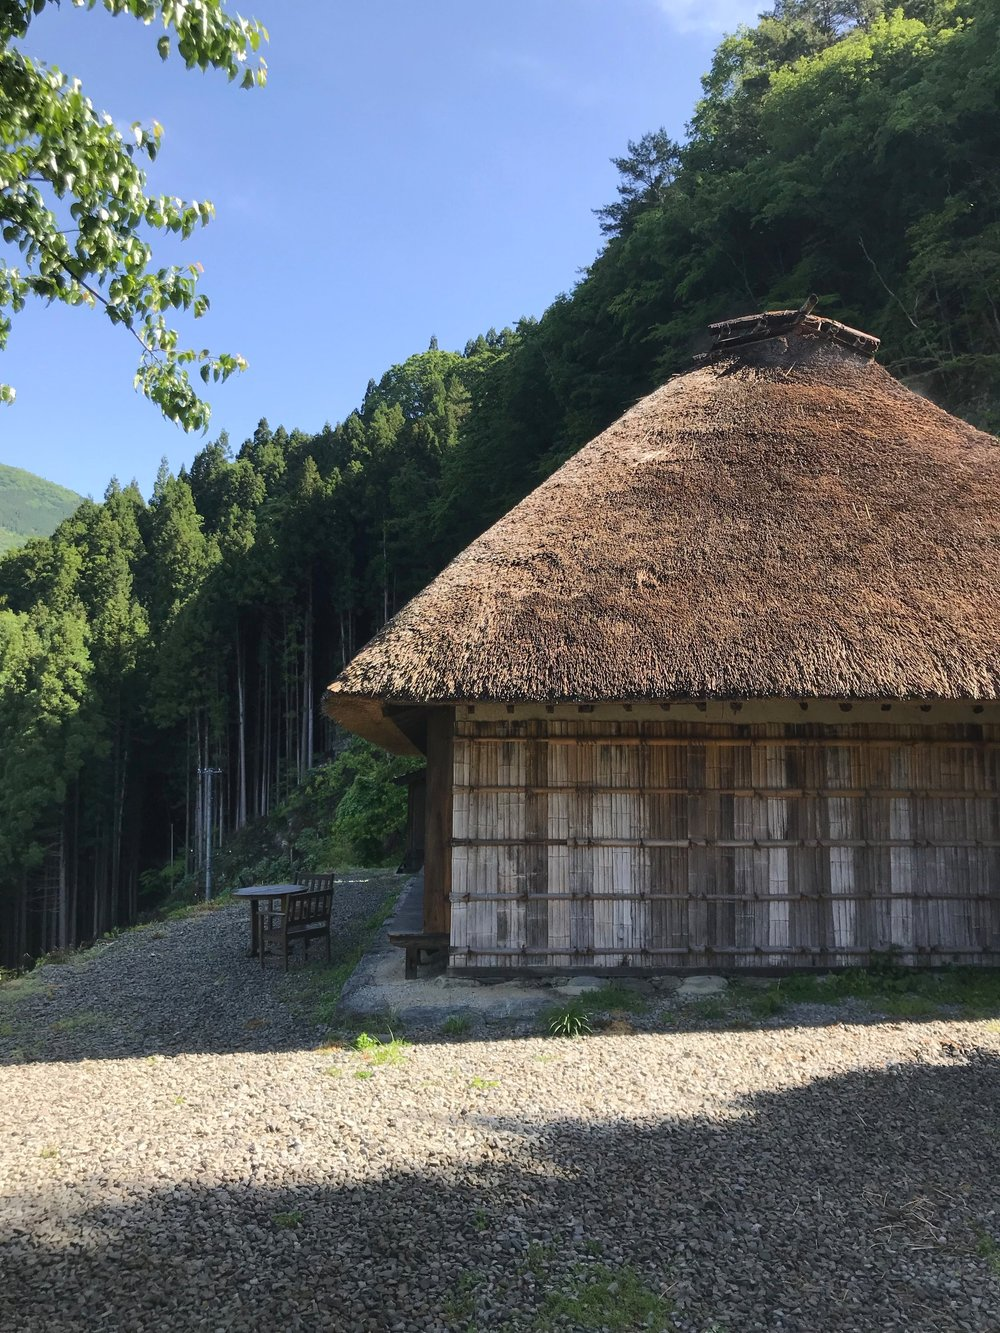 Our accommodation in the iya valley